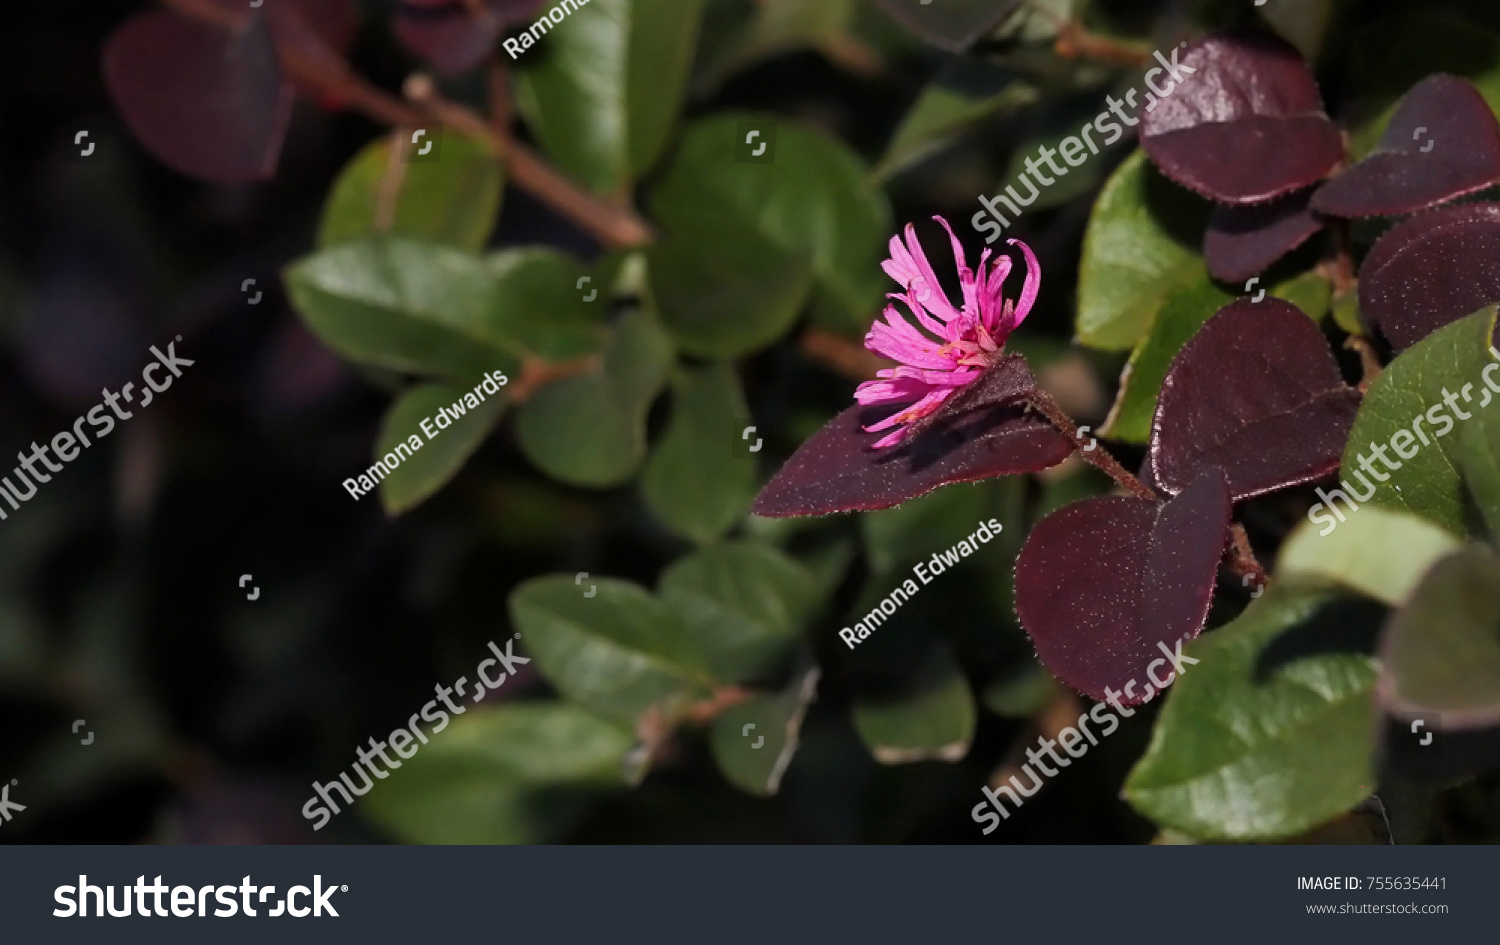 Bush purple leaves pink flower photograph stock photo royalty free bush with purple leaves and pink flower photograph of a bush with green and purple mightylinksfo